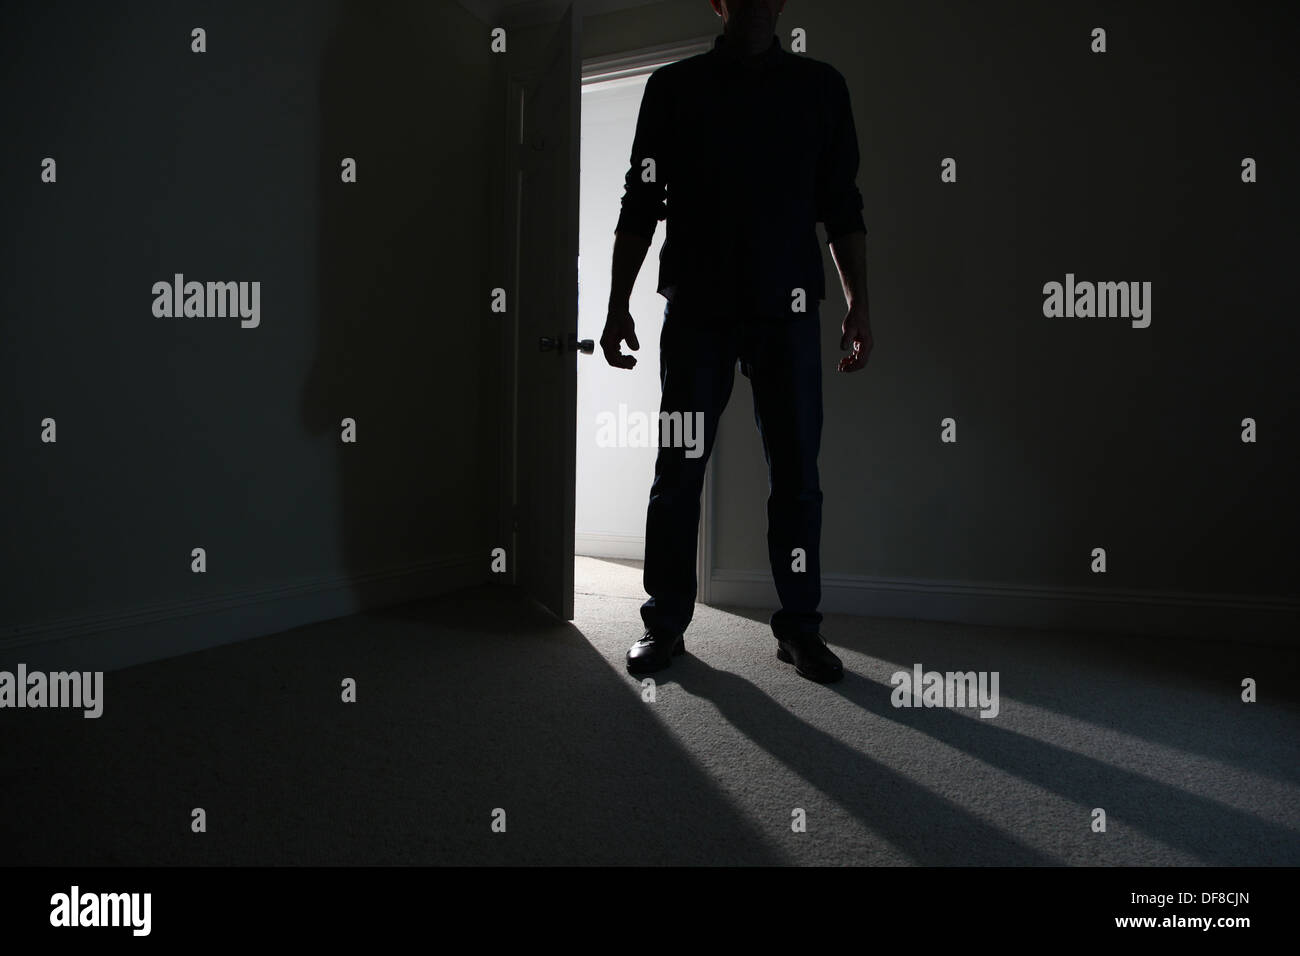 Silhouette of a male adult standing in an open doorway, entering a dark room. Model released - Stock Image